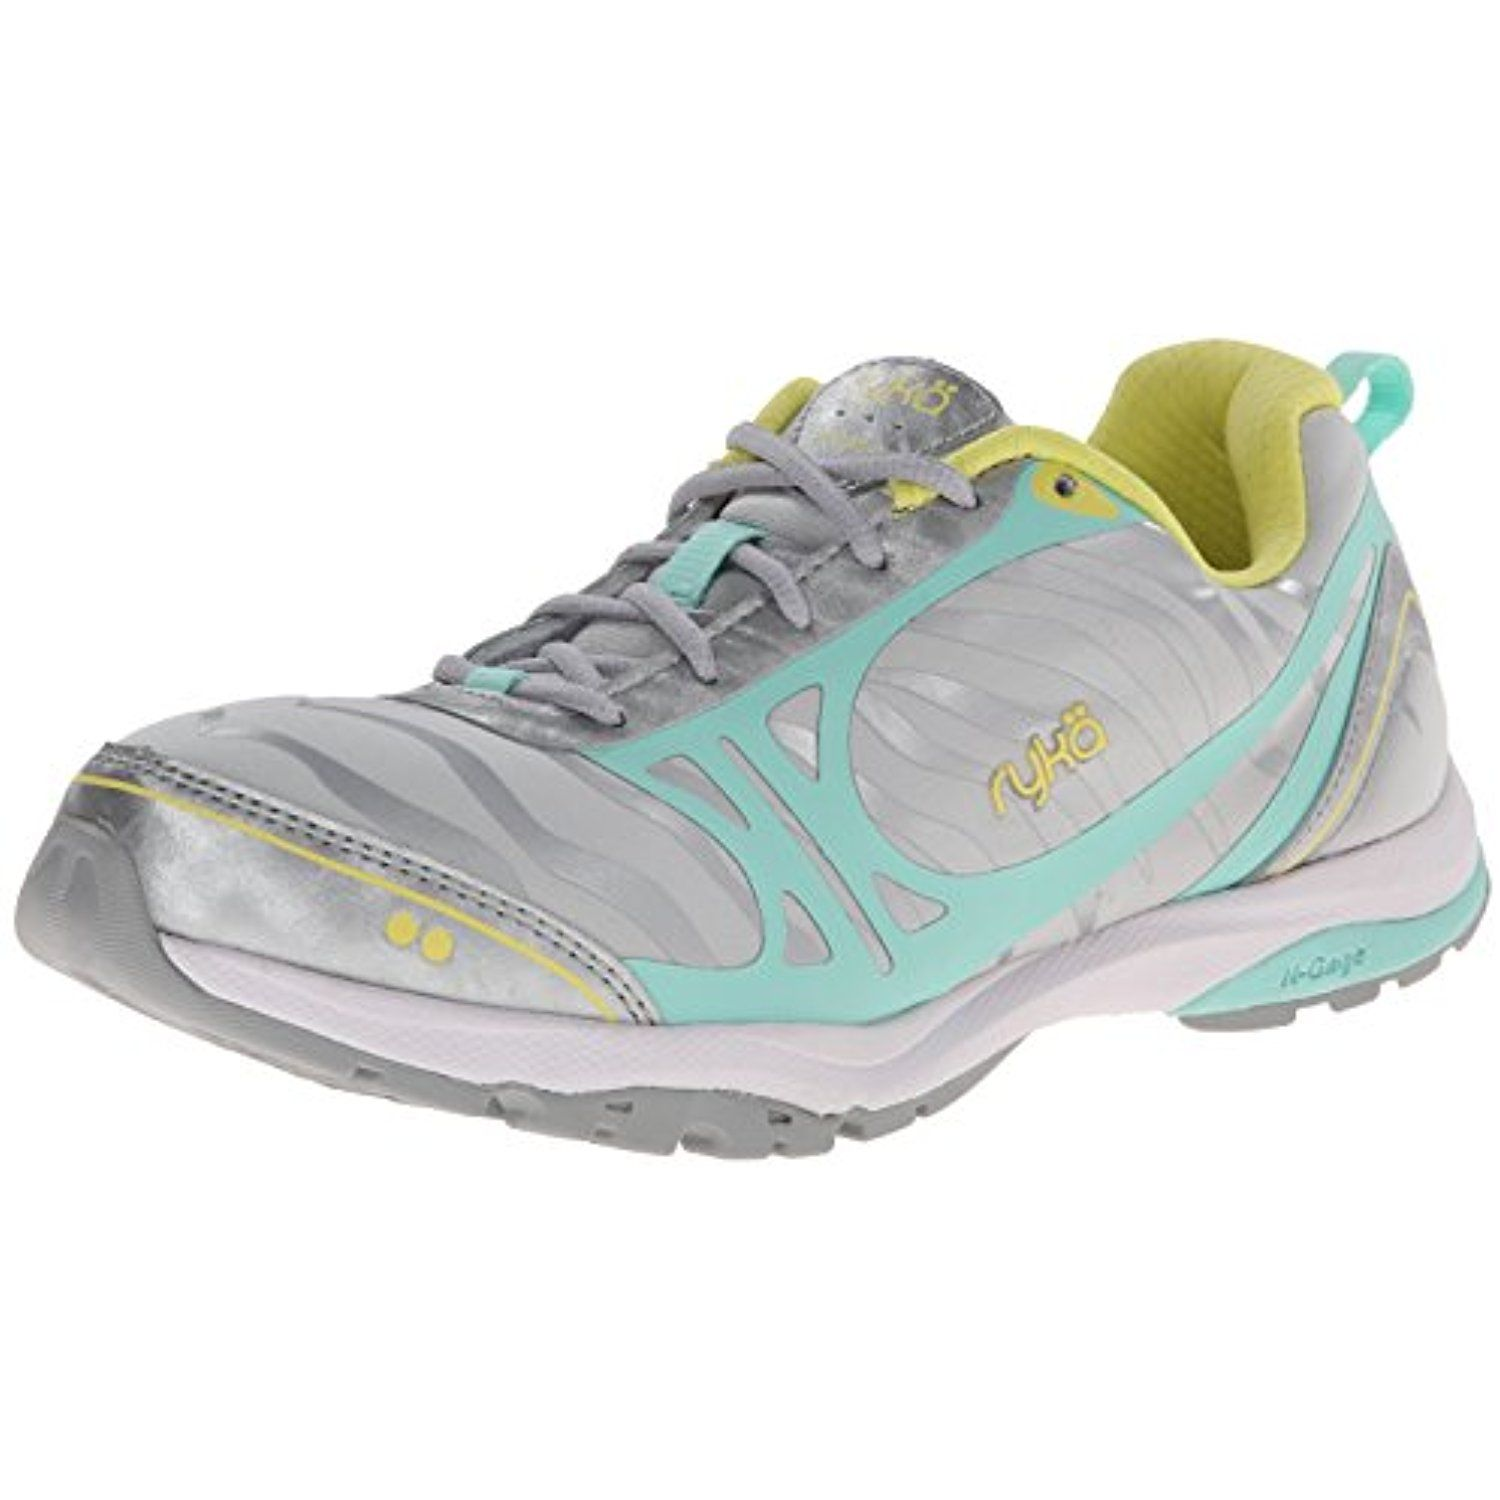 de110461f73e5 Women's Fit Pro 2 Cross-Training Shoe * You can find more details by ...